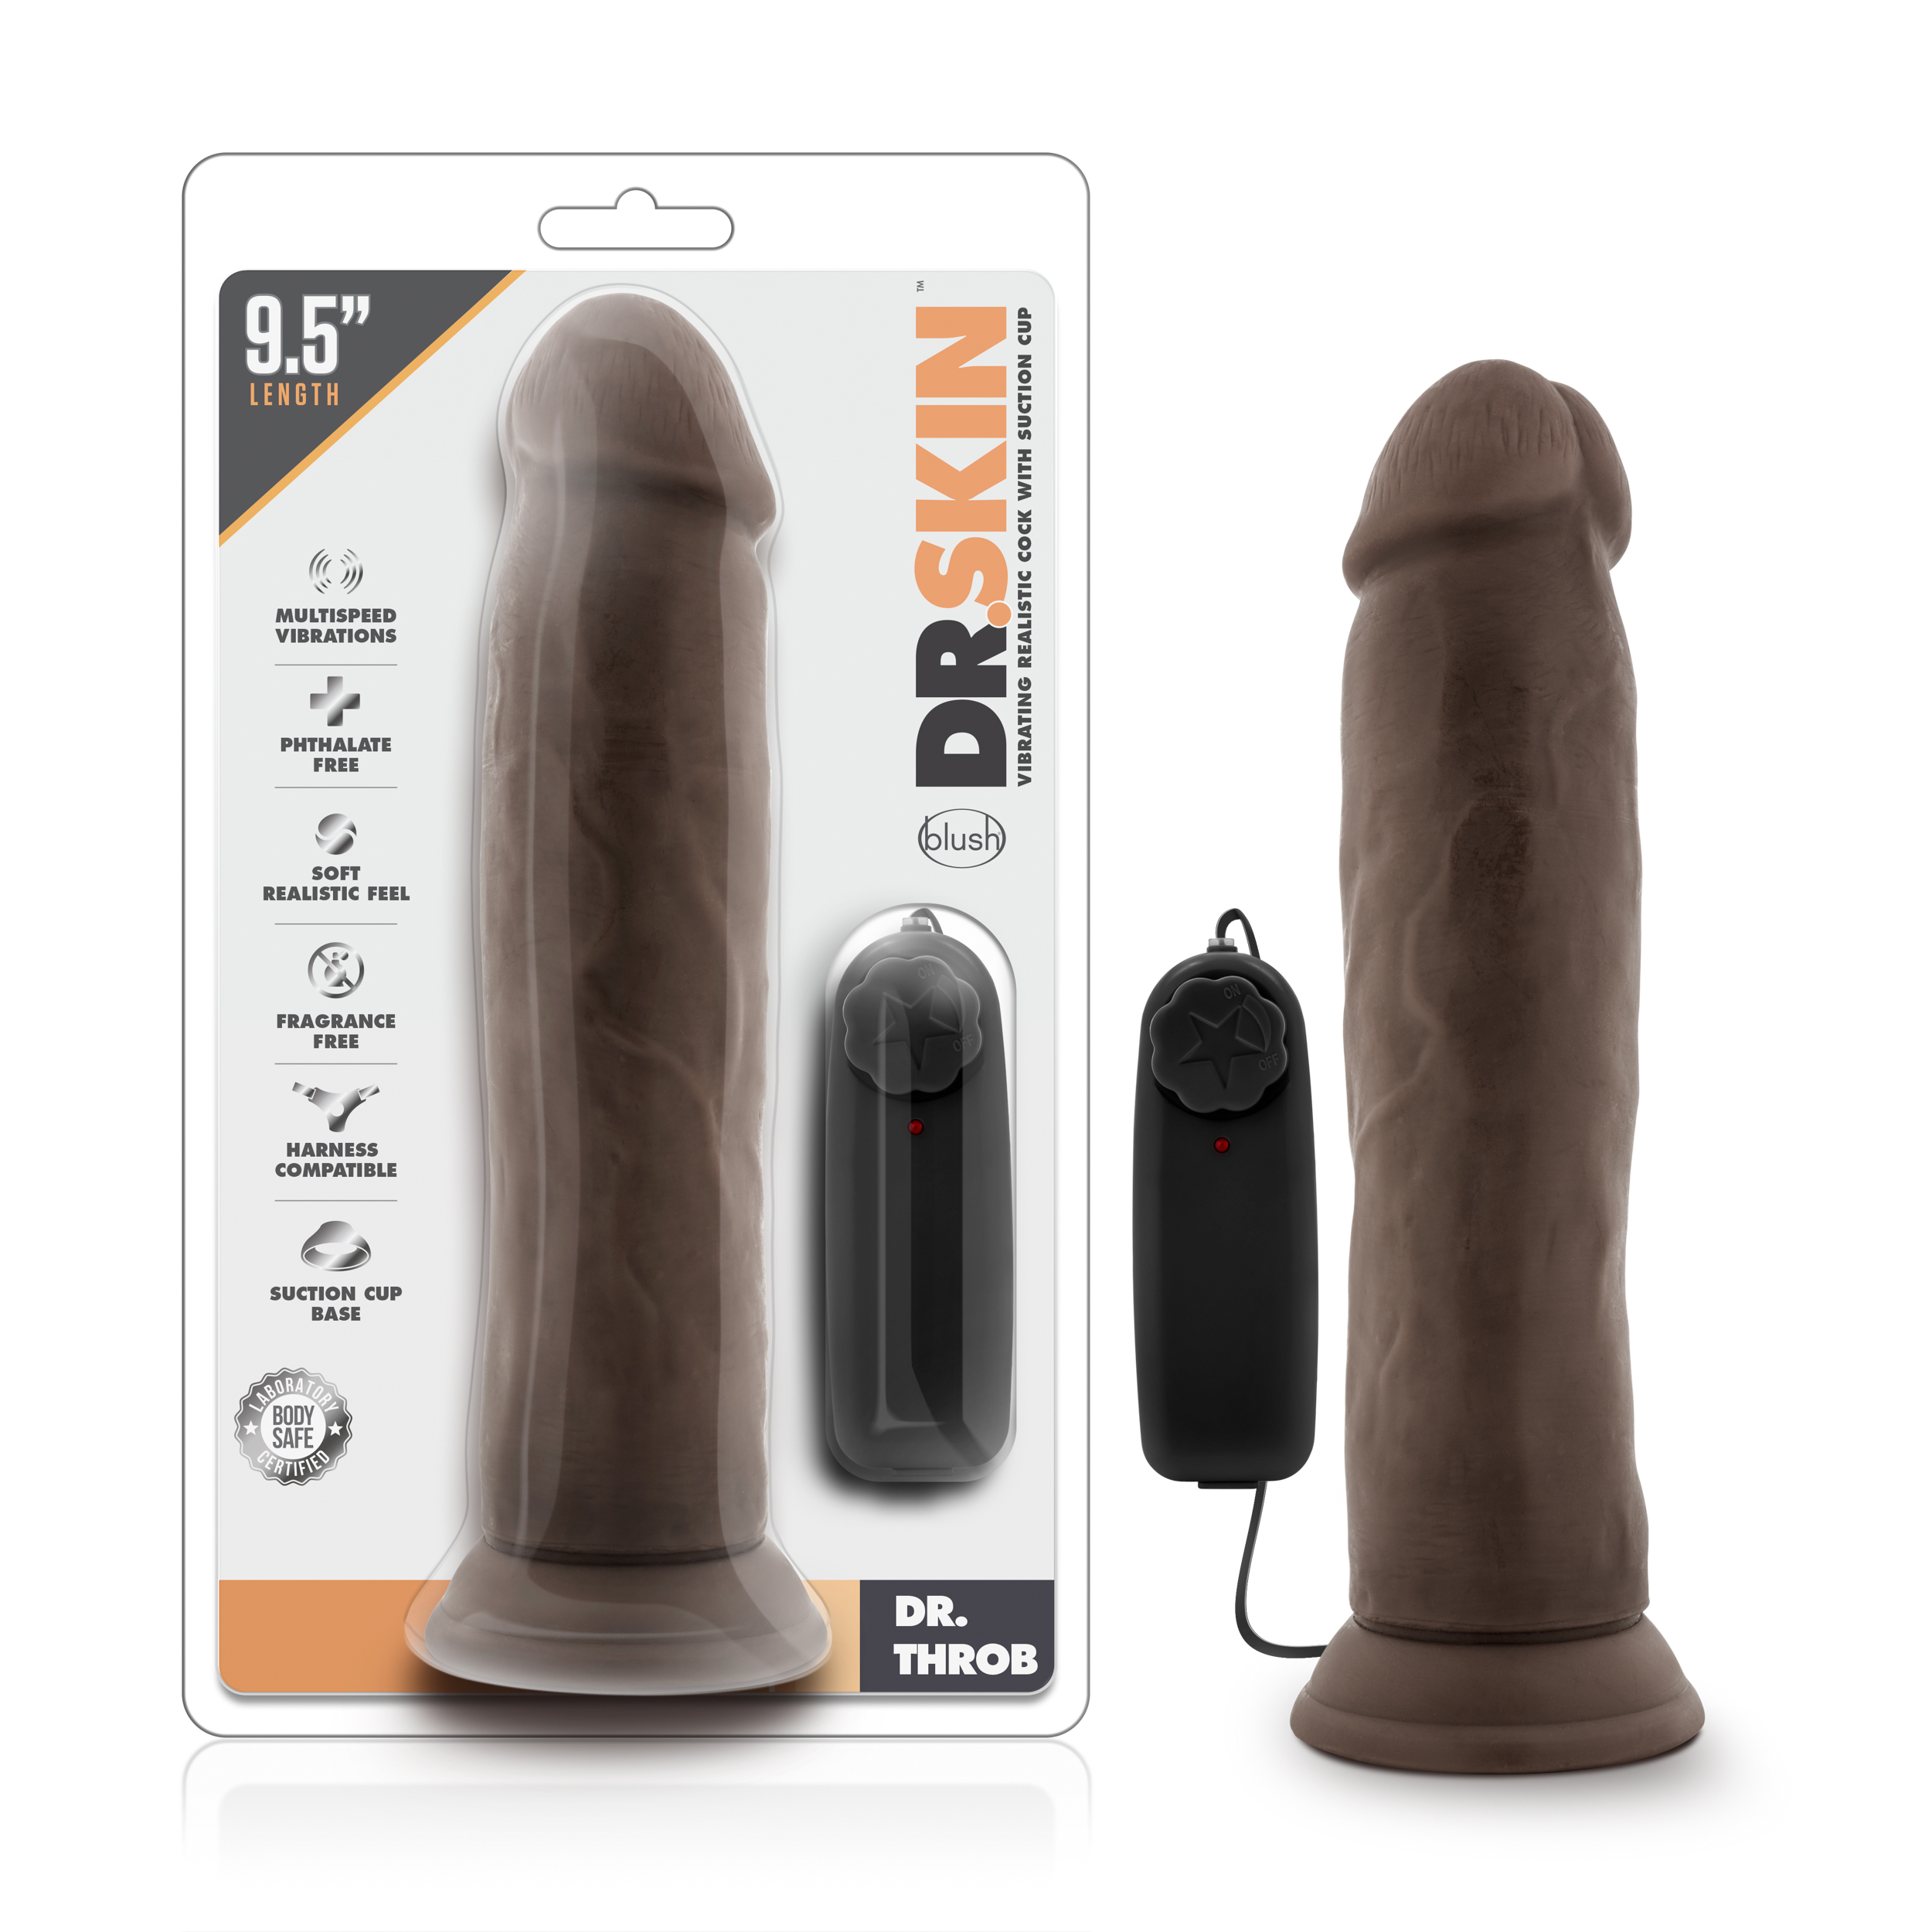 Dr. Skin - Dr. Throb - 9.5 Inch Vibrating Realistic Cock with Suction Cup - Chocolate